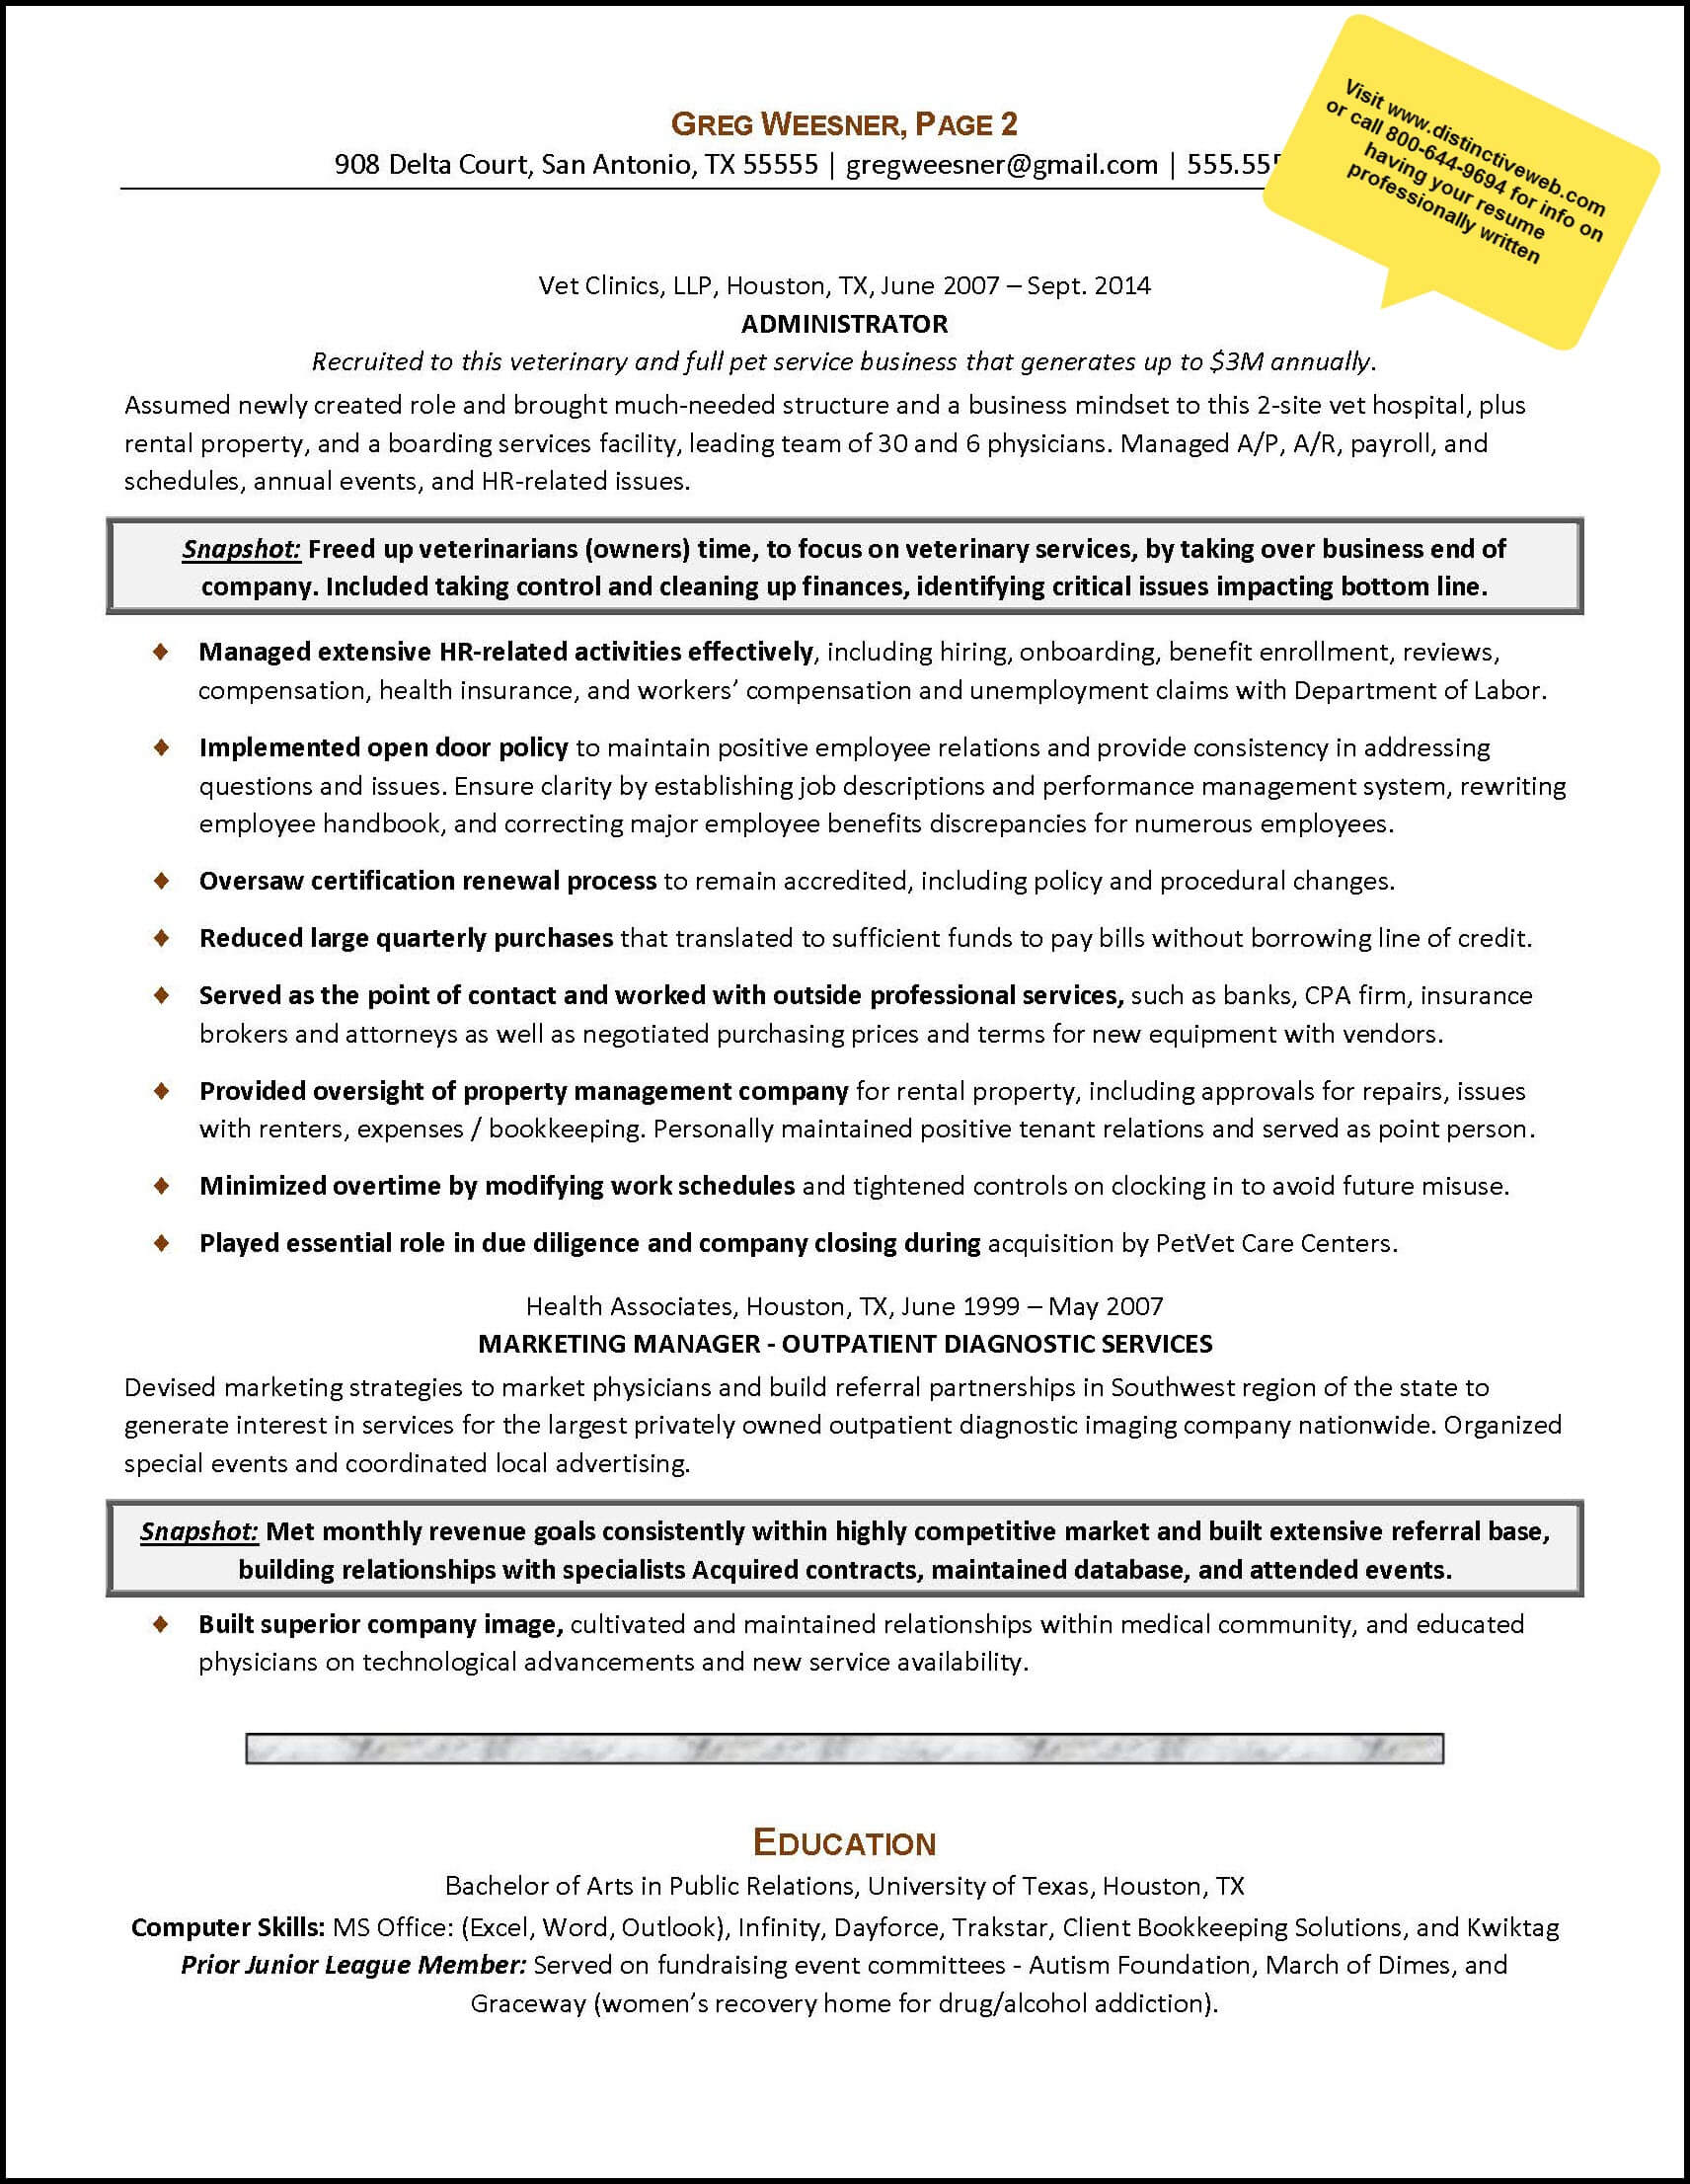 sample career change resume for an administrative services manager page 2 - Service Manager Resume